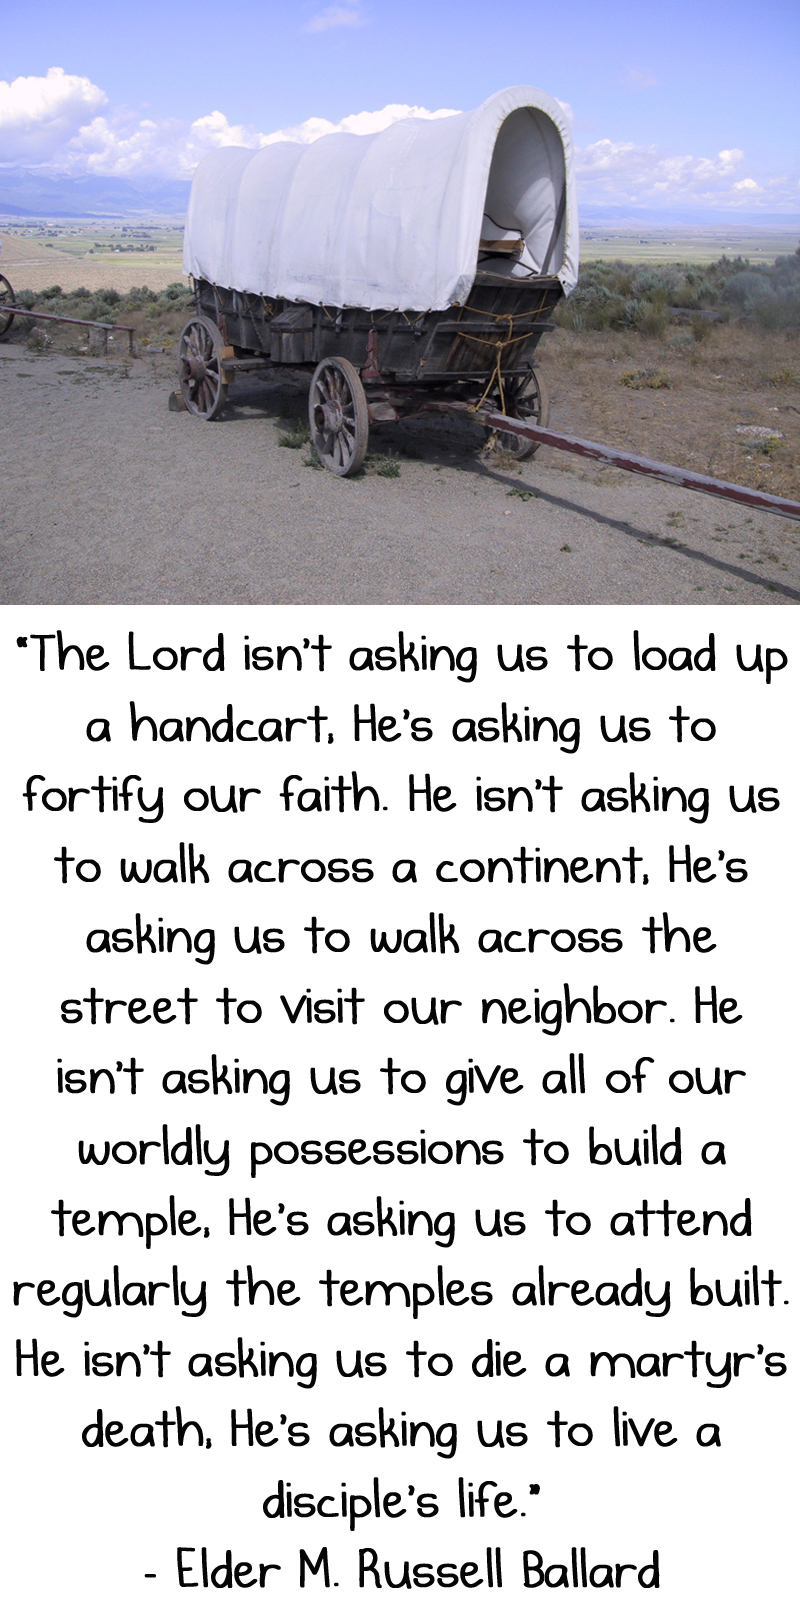 The Lord isn't asking us to load up a handcart; He's asking us to fortify our faith. He isn't asking us to walk across a continent; He's asking us to walk across the street to visit our neighbor. He isn't asking us to give all of our worldly possessions to build a temple; He's asking us to … attend regularly the temples already built. He isn't asking us to die a martyr's death; He's asking us to live a disciple's life. - M. Russell Ballard